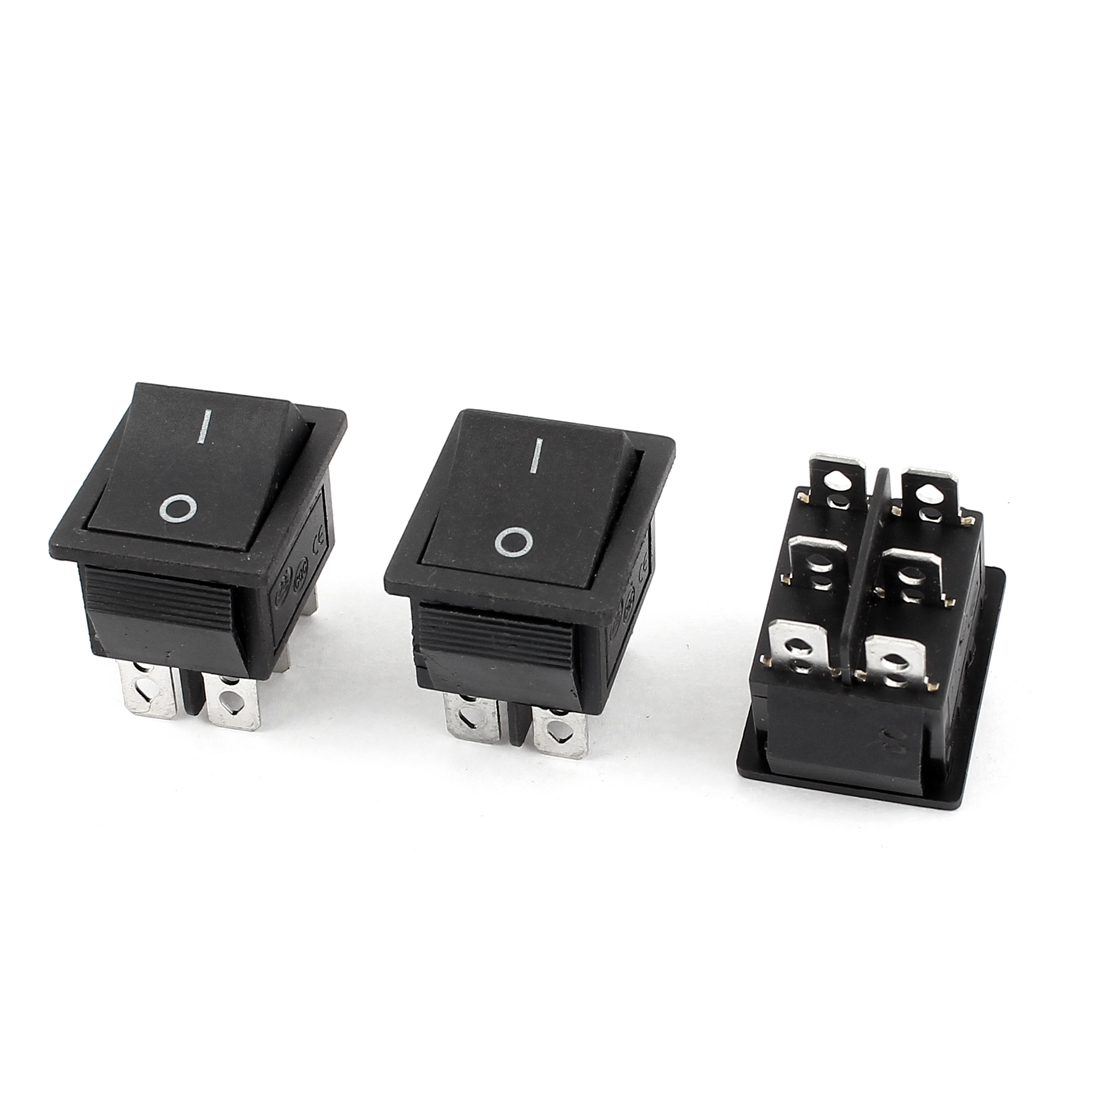 3 Pcs 6 Pin DPDT ON/OFF Black Boat Rocker Switch AC 250V/15A 125V/20A